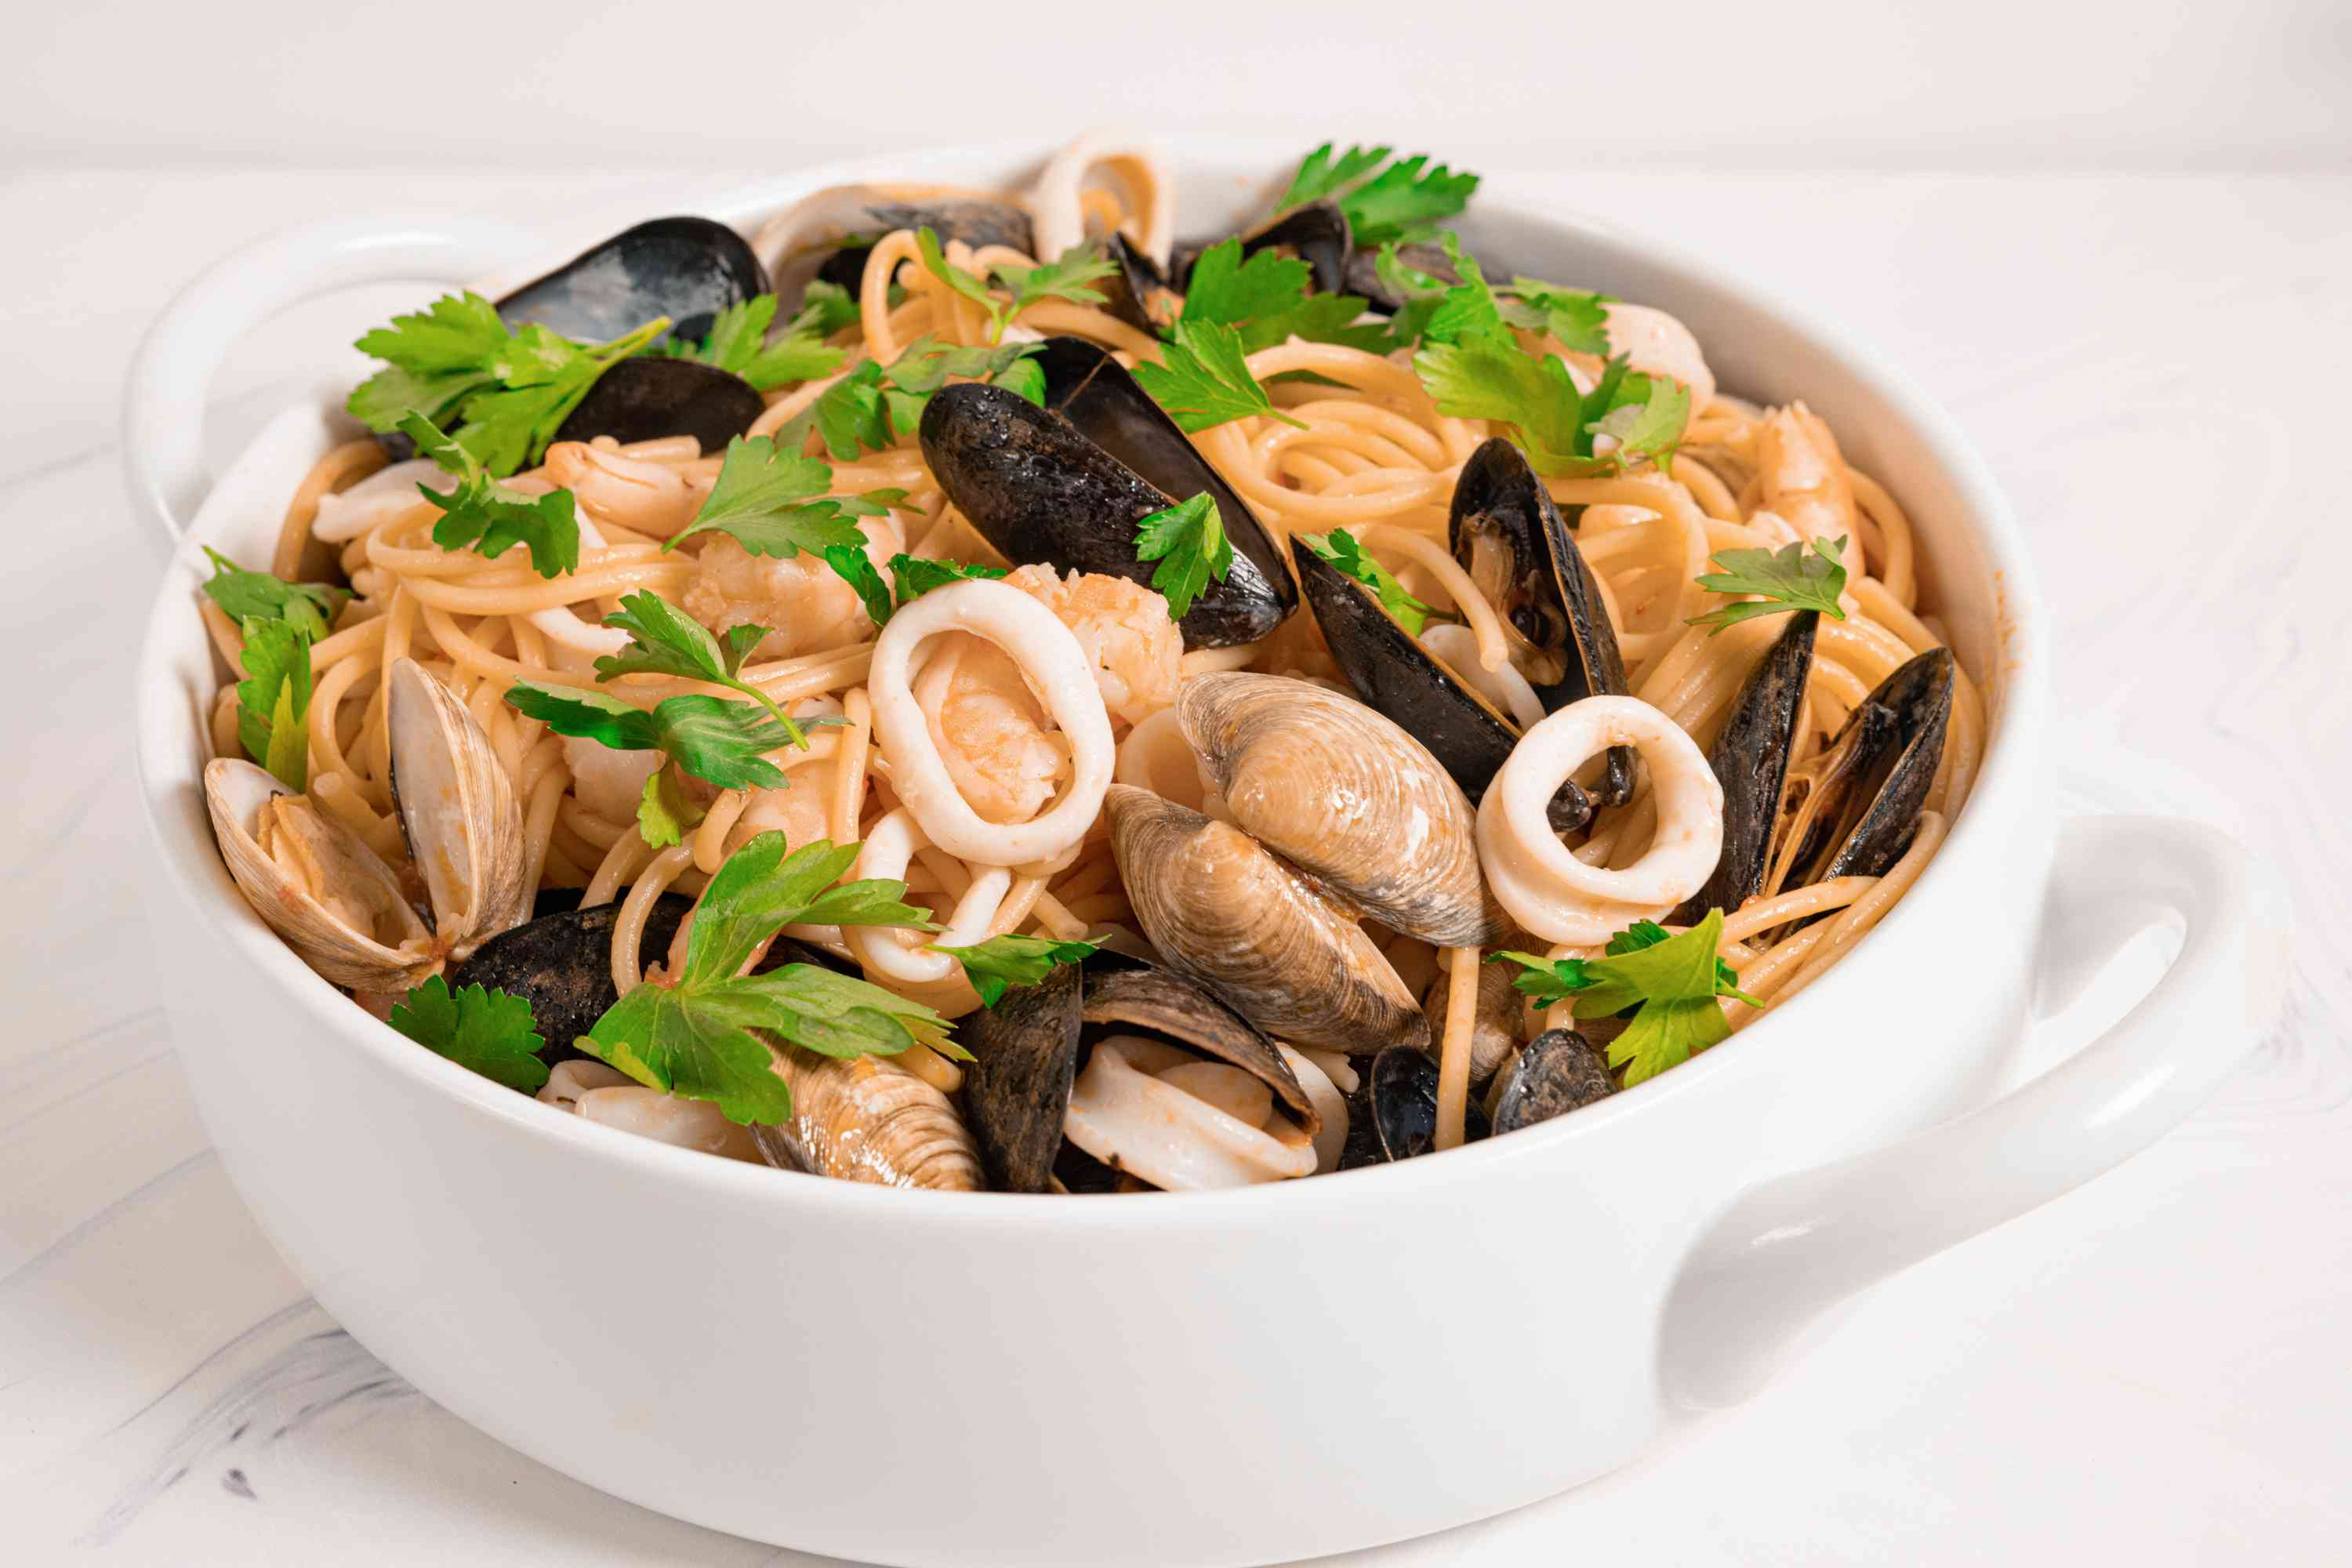 Pasta With Mixed Seafood (Pasta alla Posillipo) in a bowl